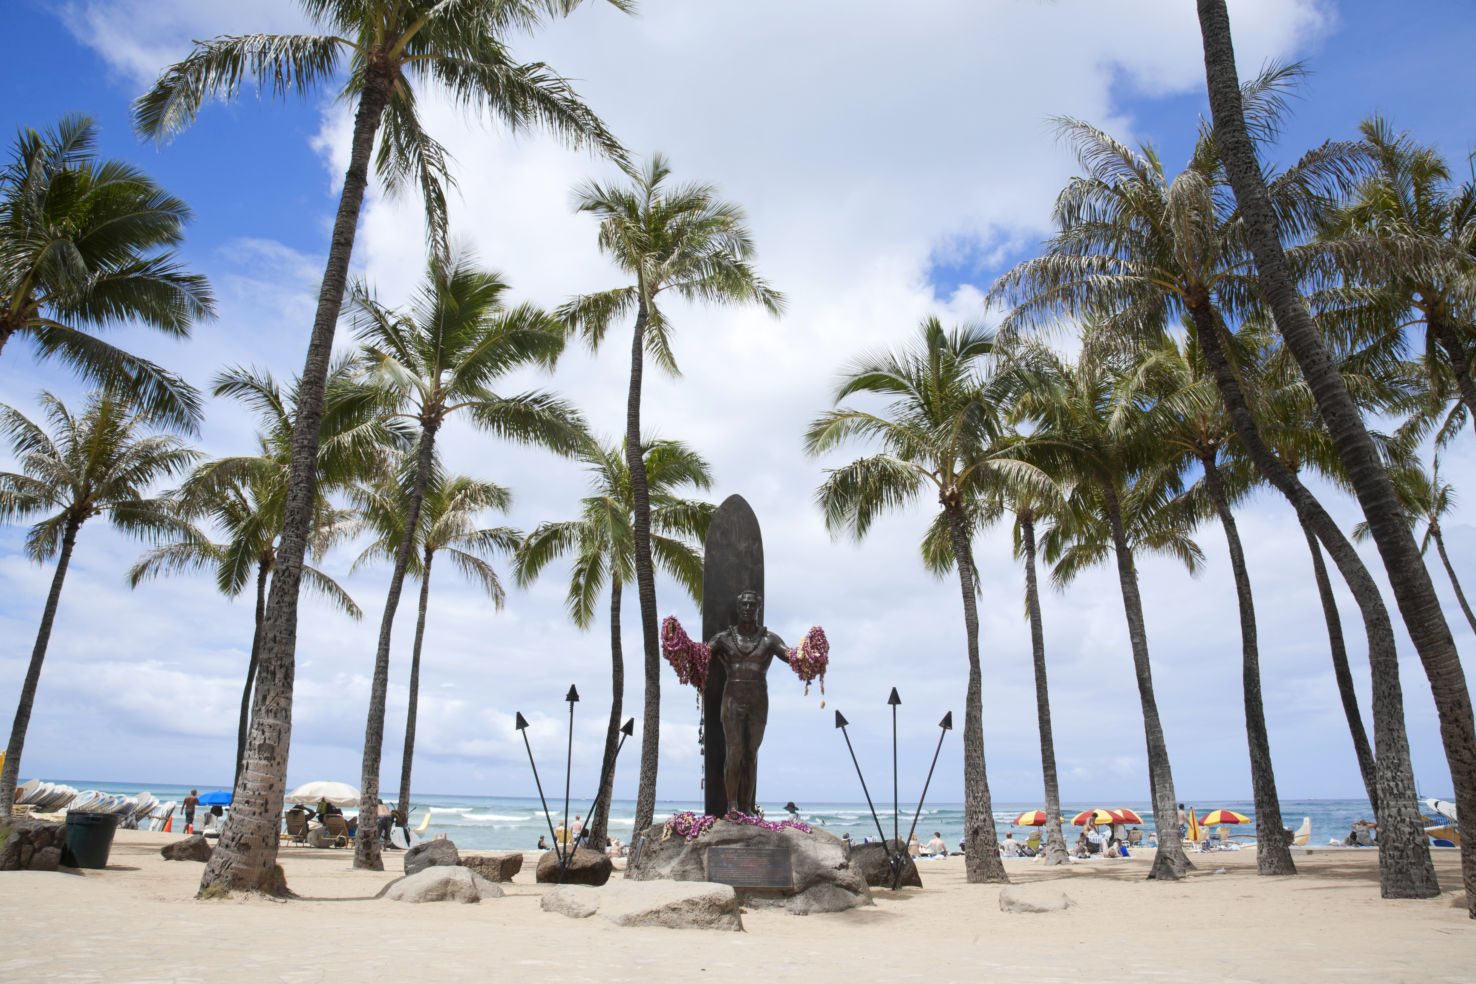 A sunny day at Waikiki Beach on the island of Oahu